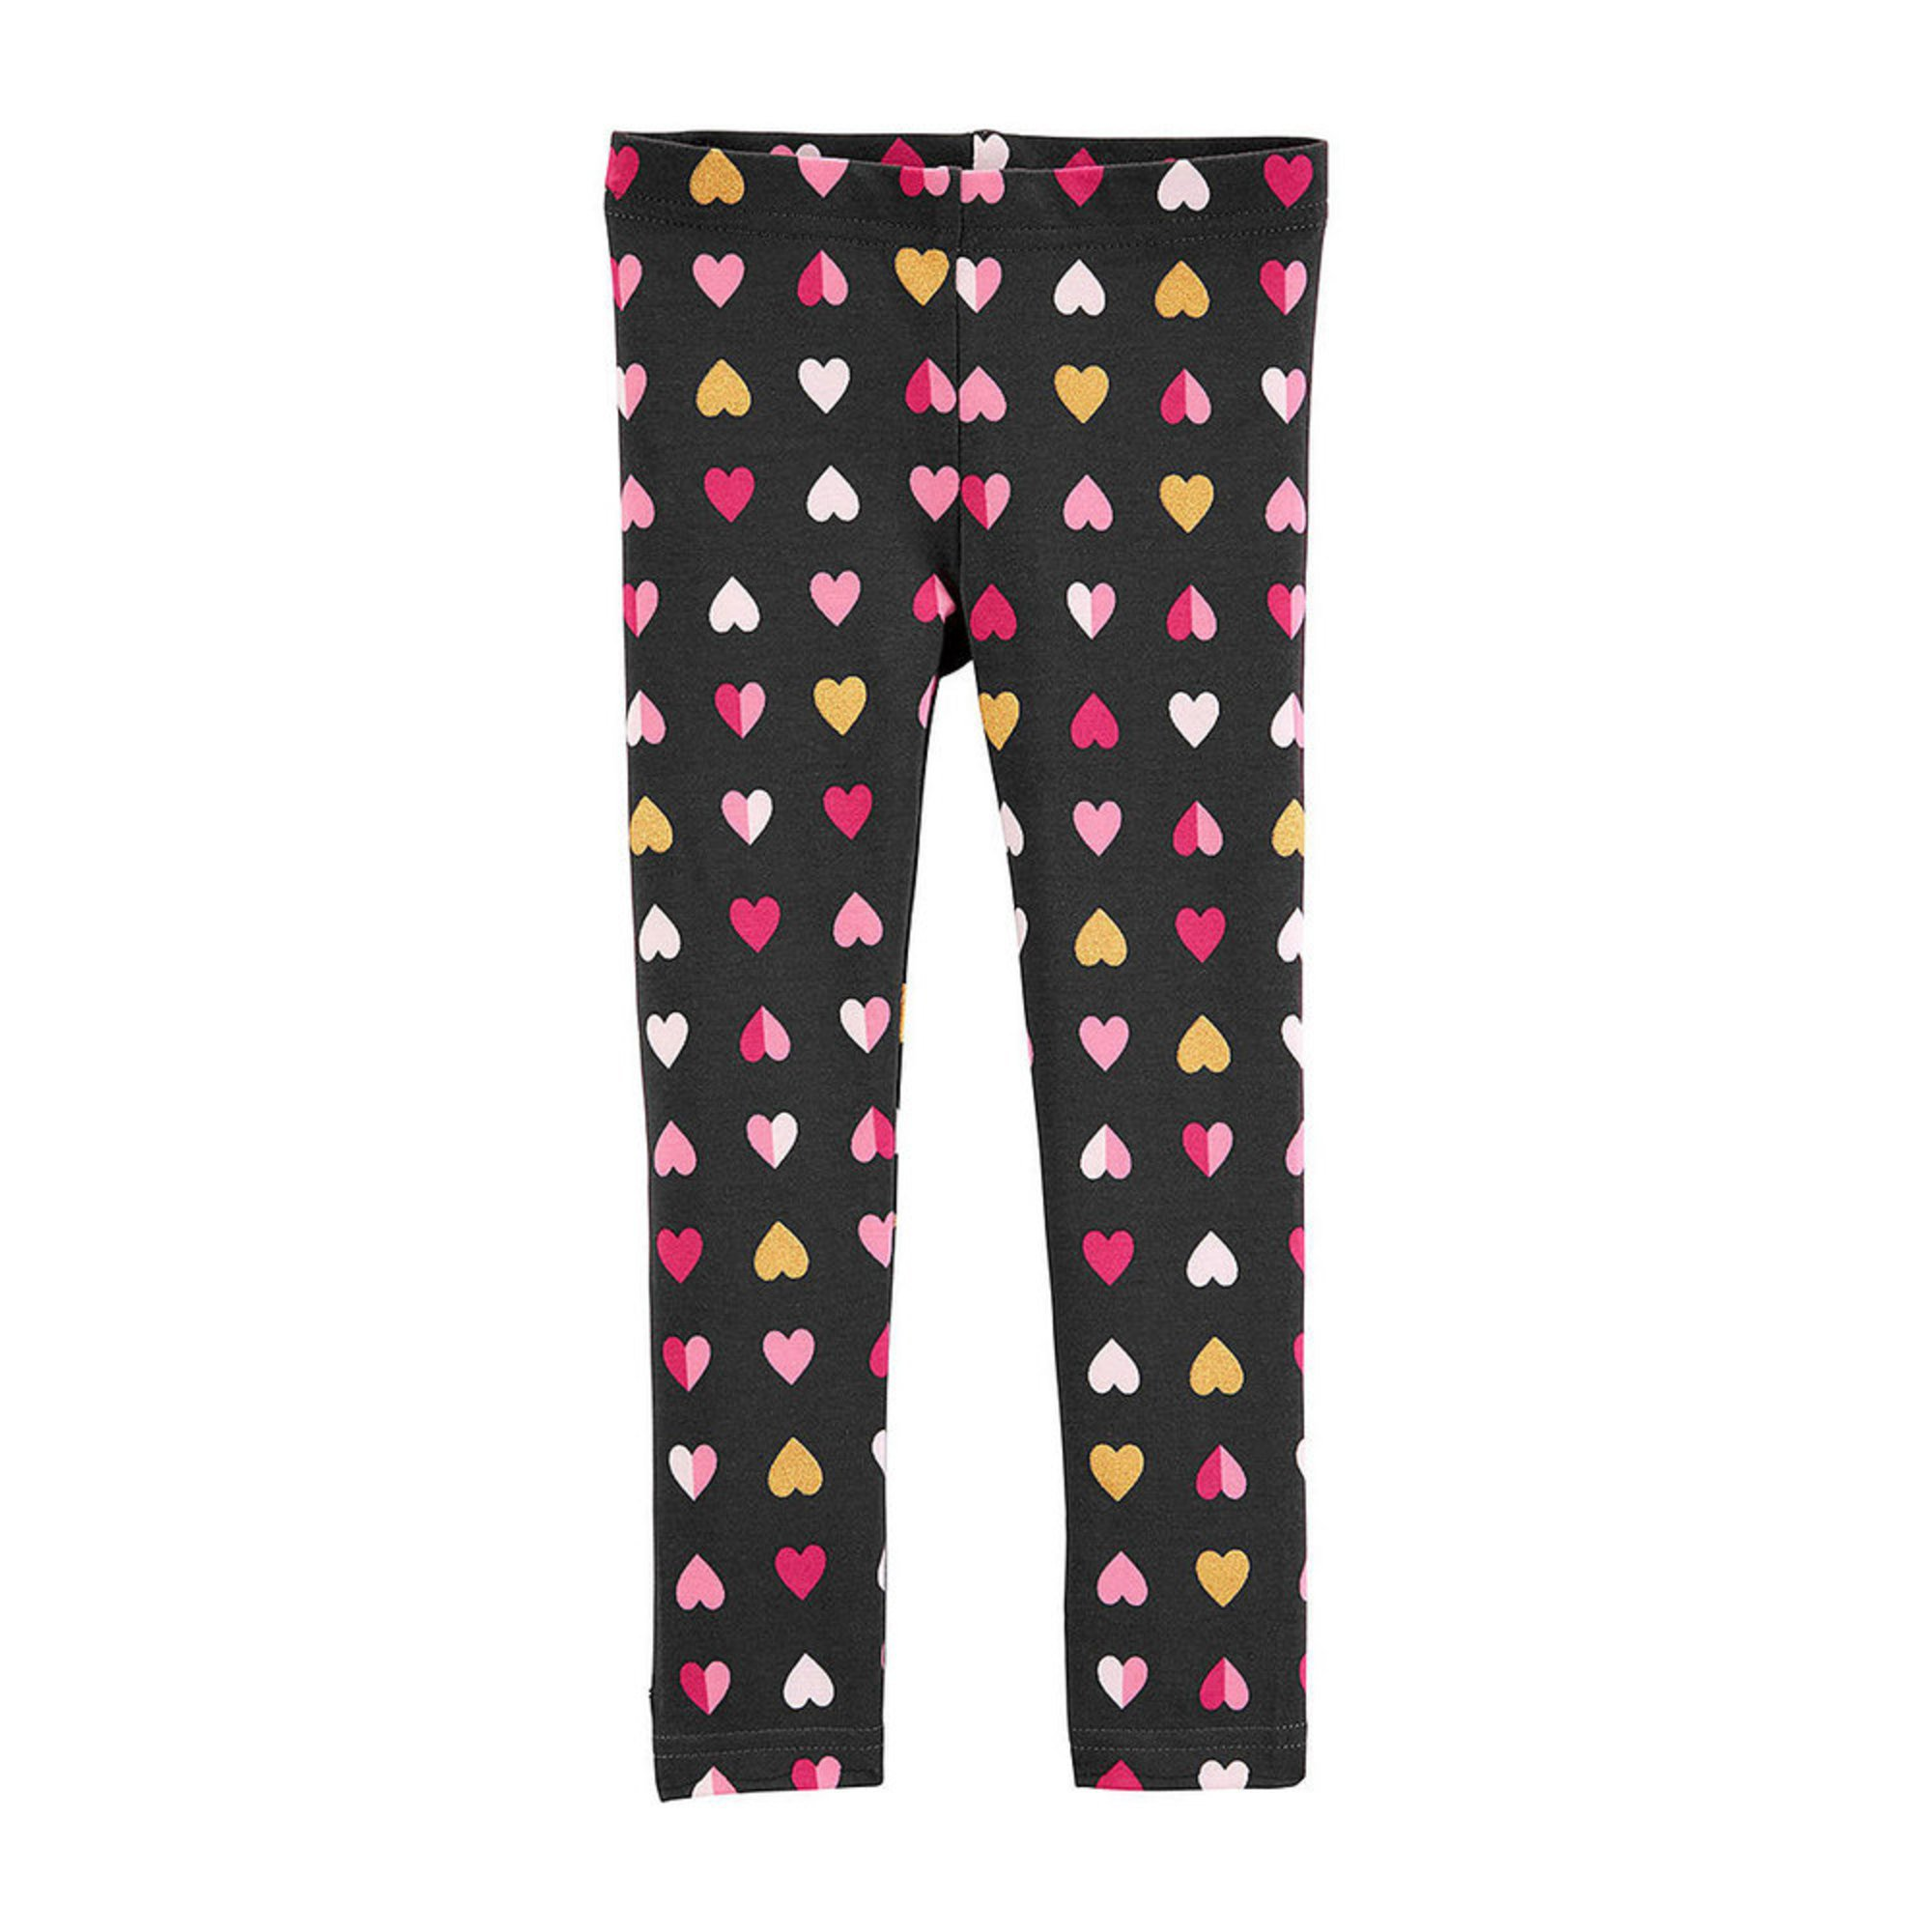 8c2749ef63f98 Carters Toddler Girls All Over Heart Print Glitter Legging | Little ...